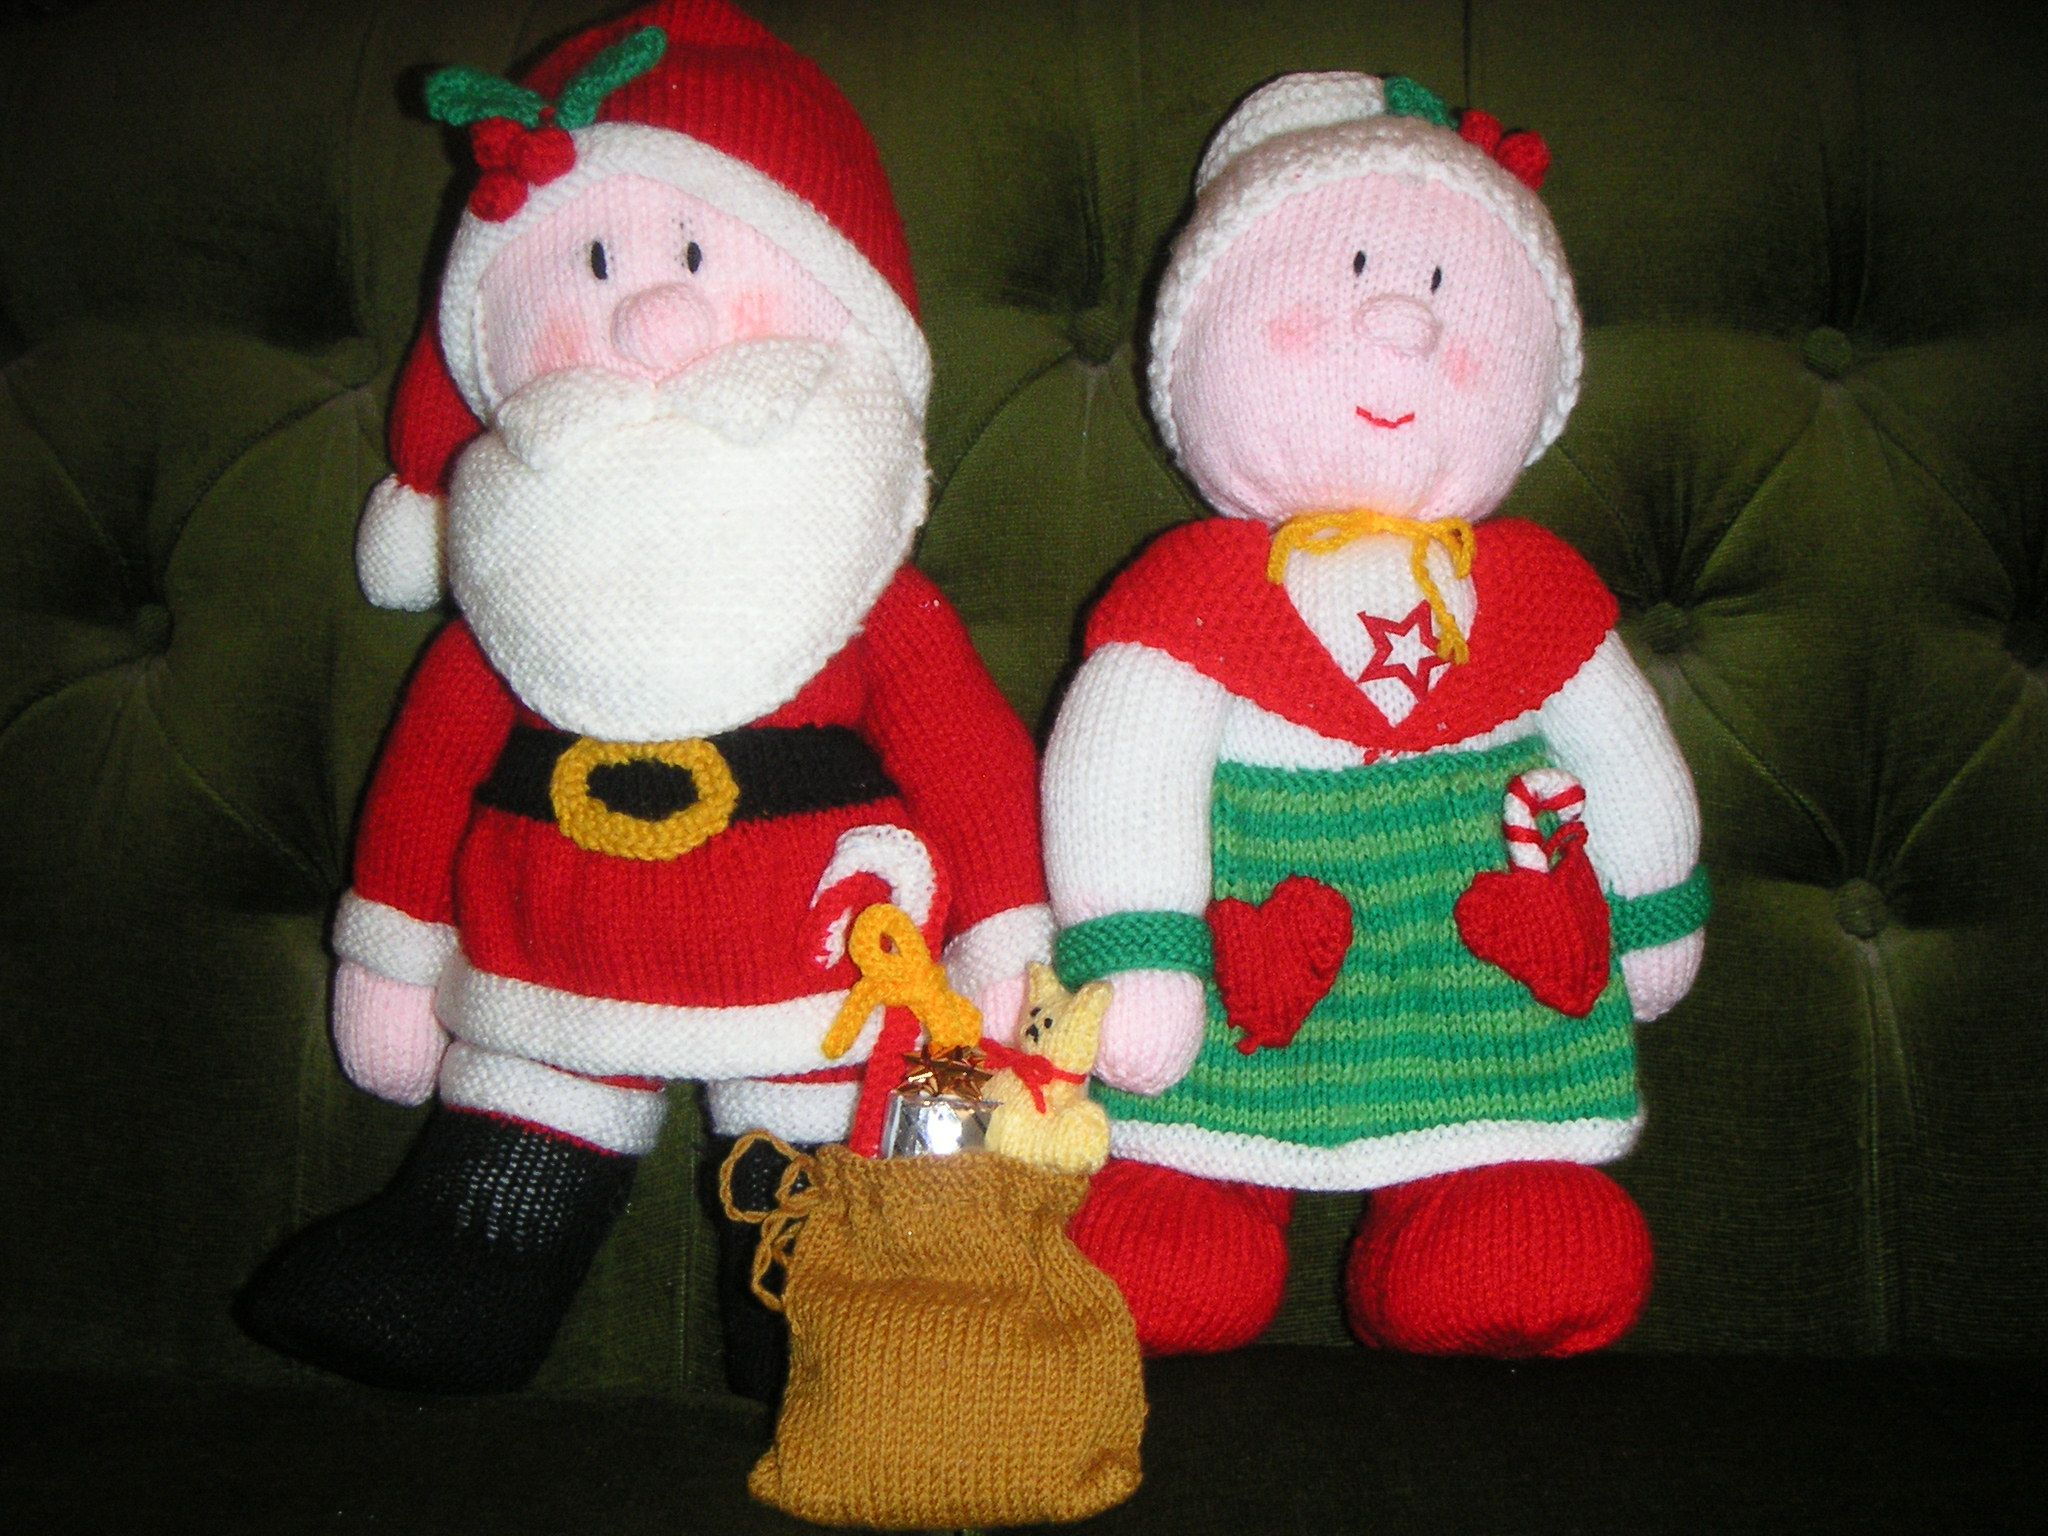 Mr and Mrs Claus | Christmas | Pinterest